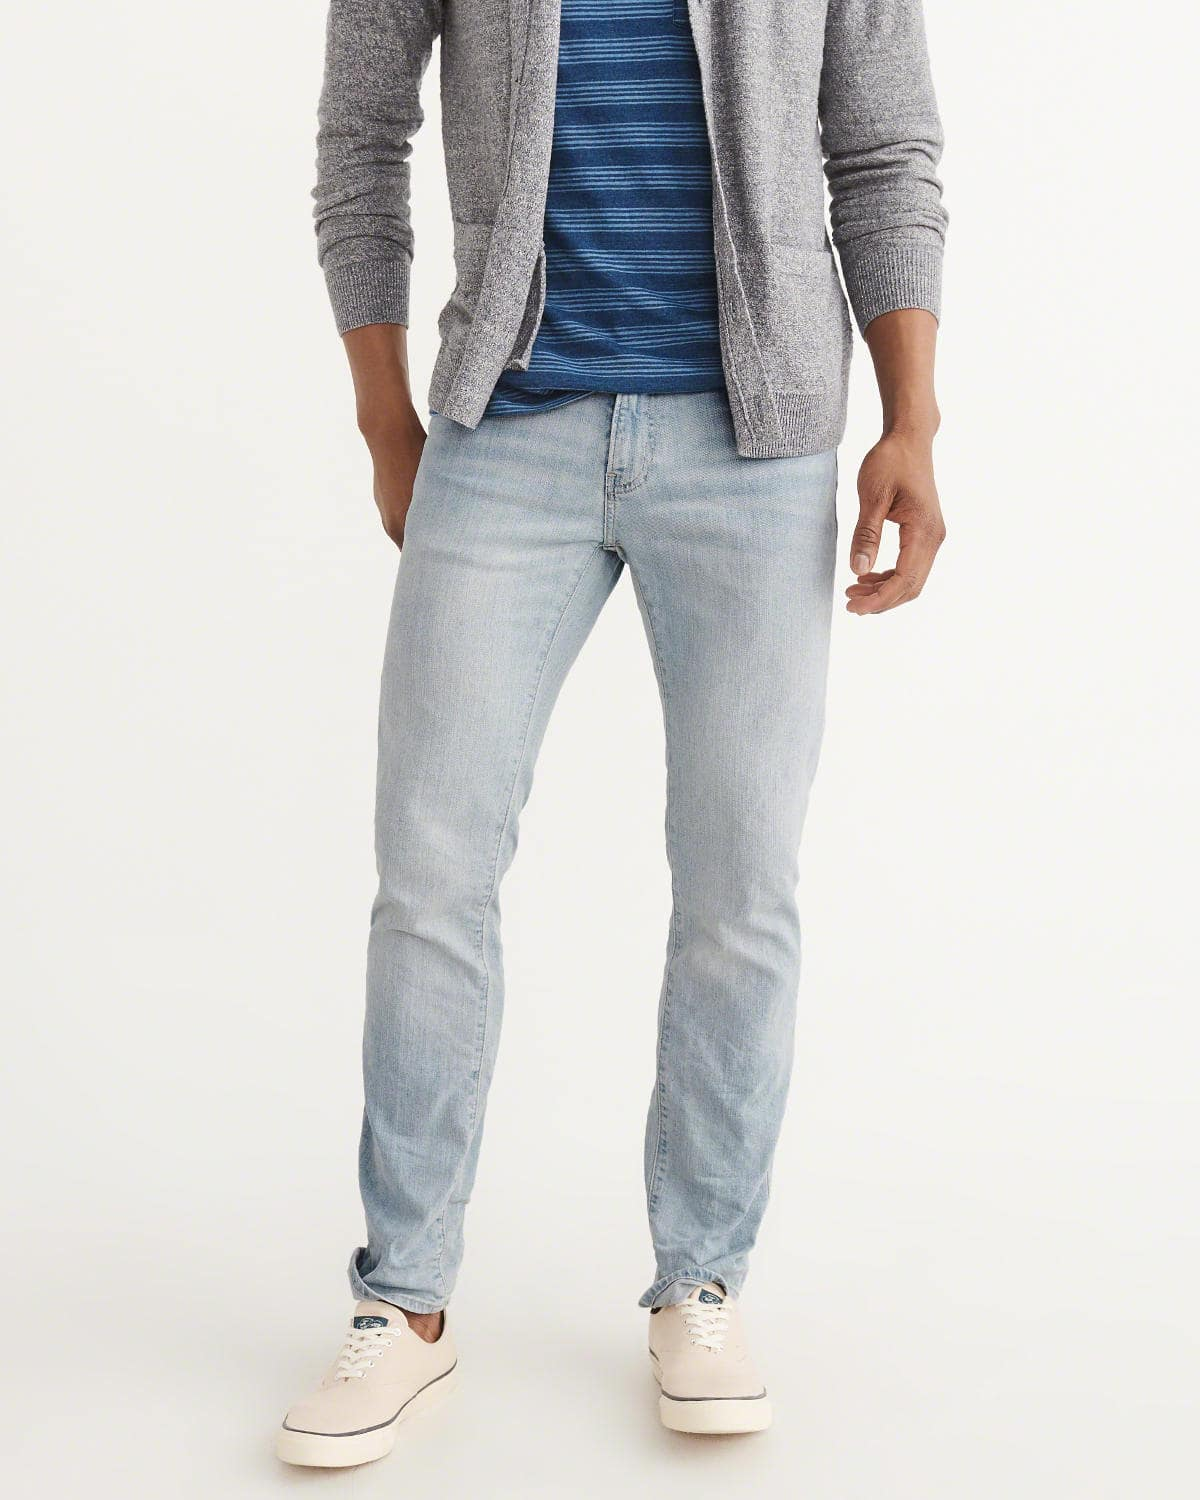 7c7267d7a Abercrombie & Fitch: 30% Off Clearance + $20 off $50: Men's Jeans ...